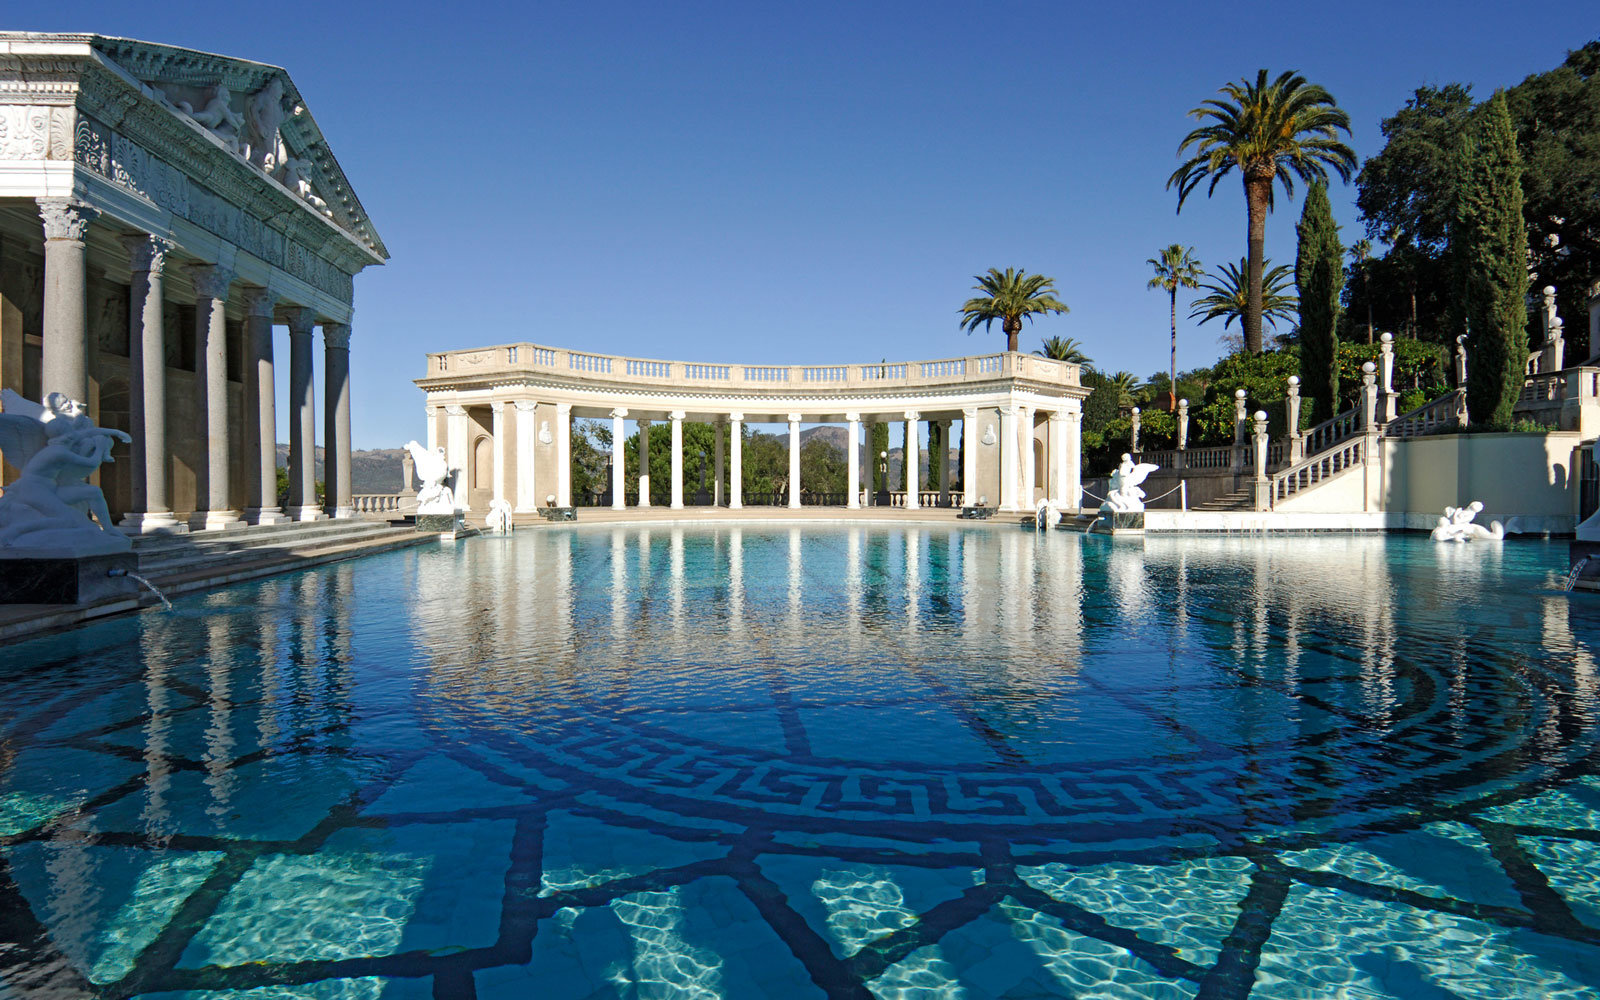 California's Hearst Castle is hosting pool parties this summer